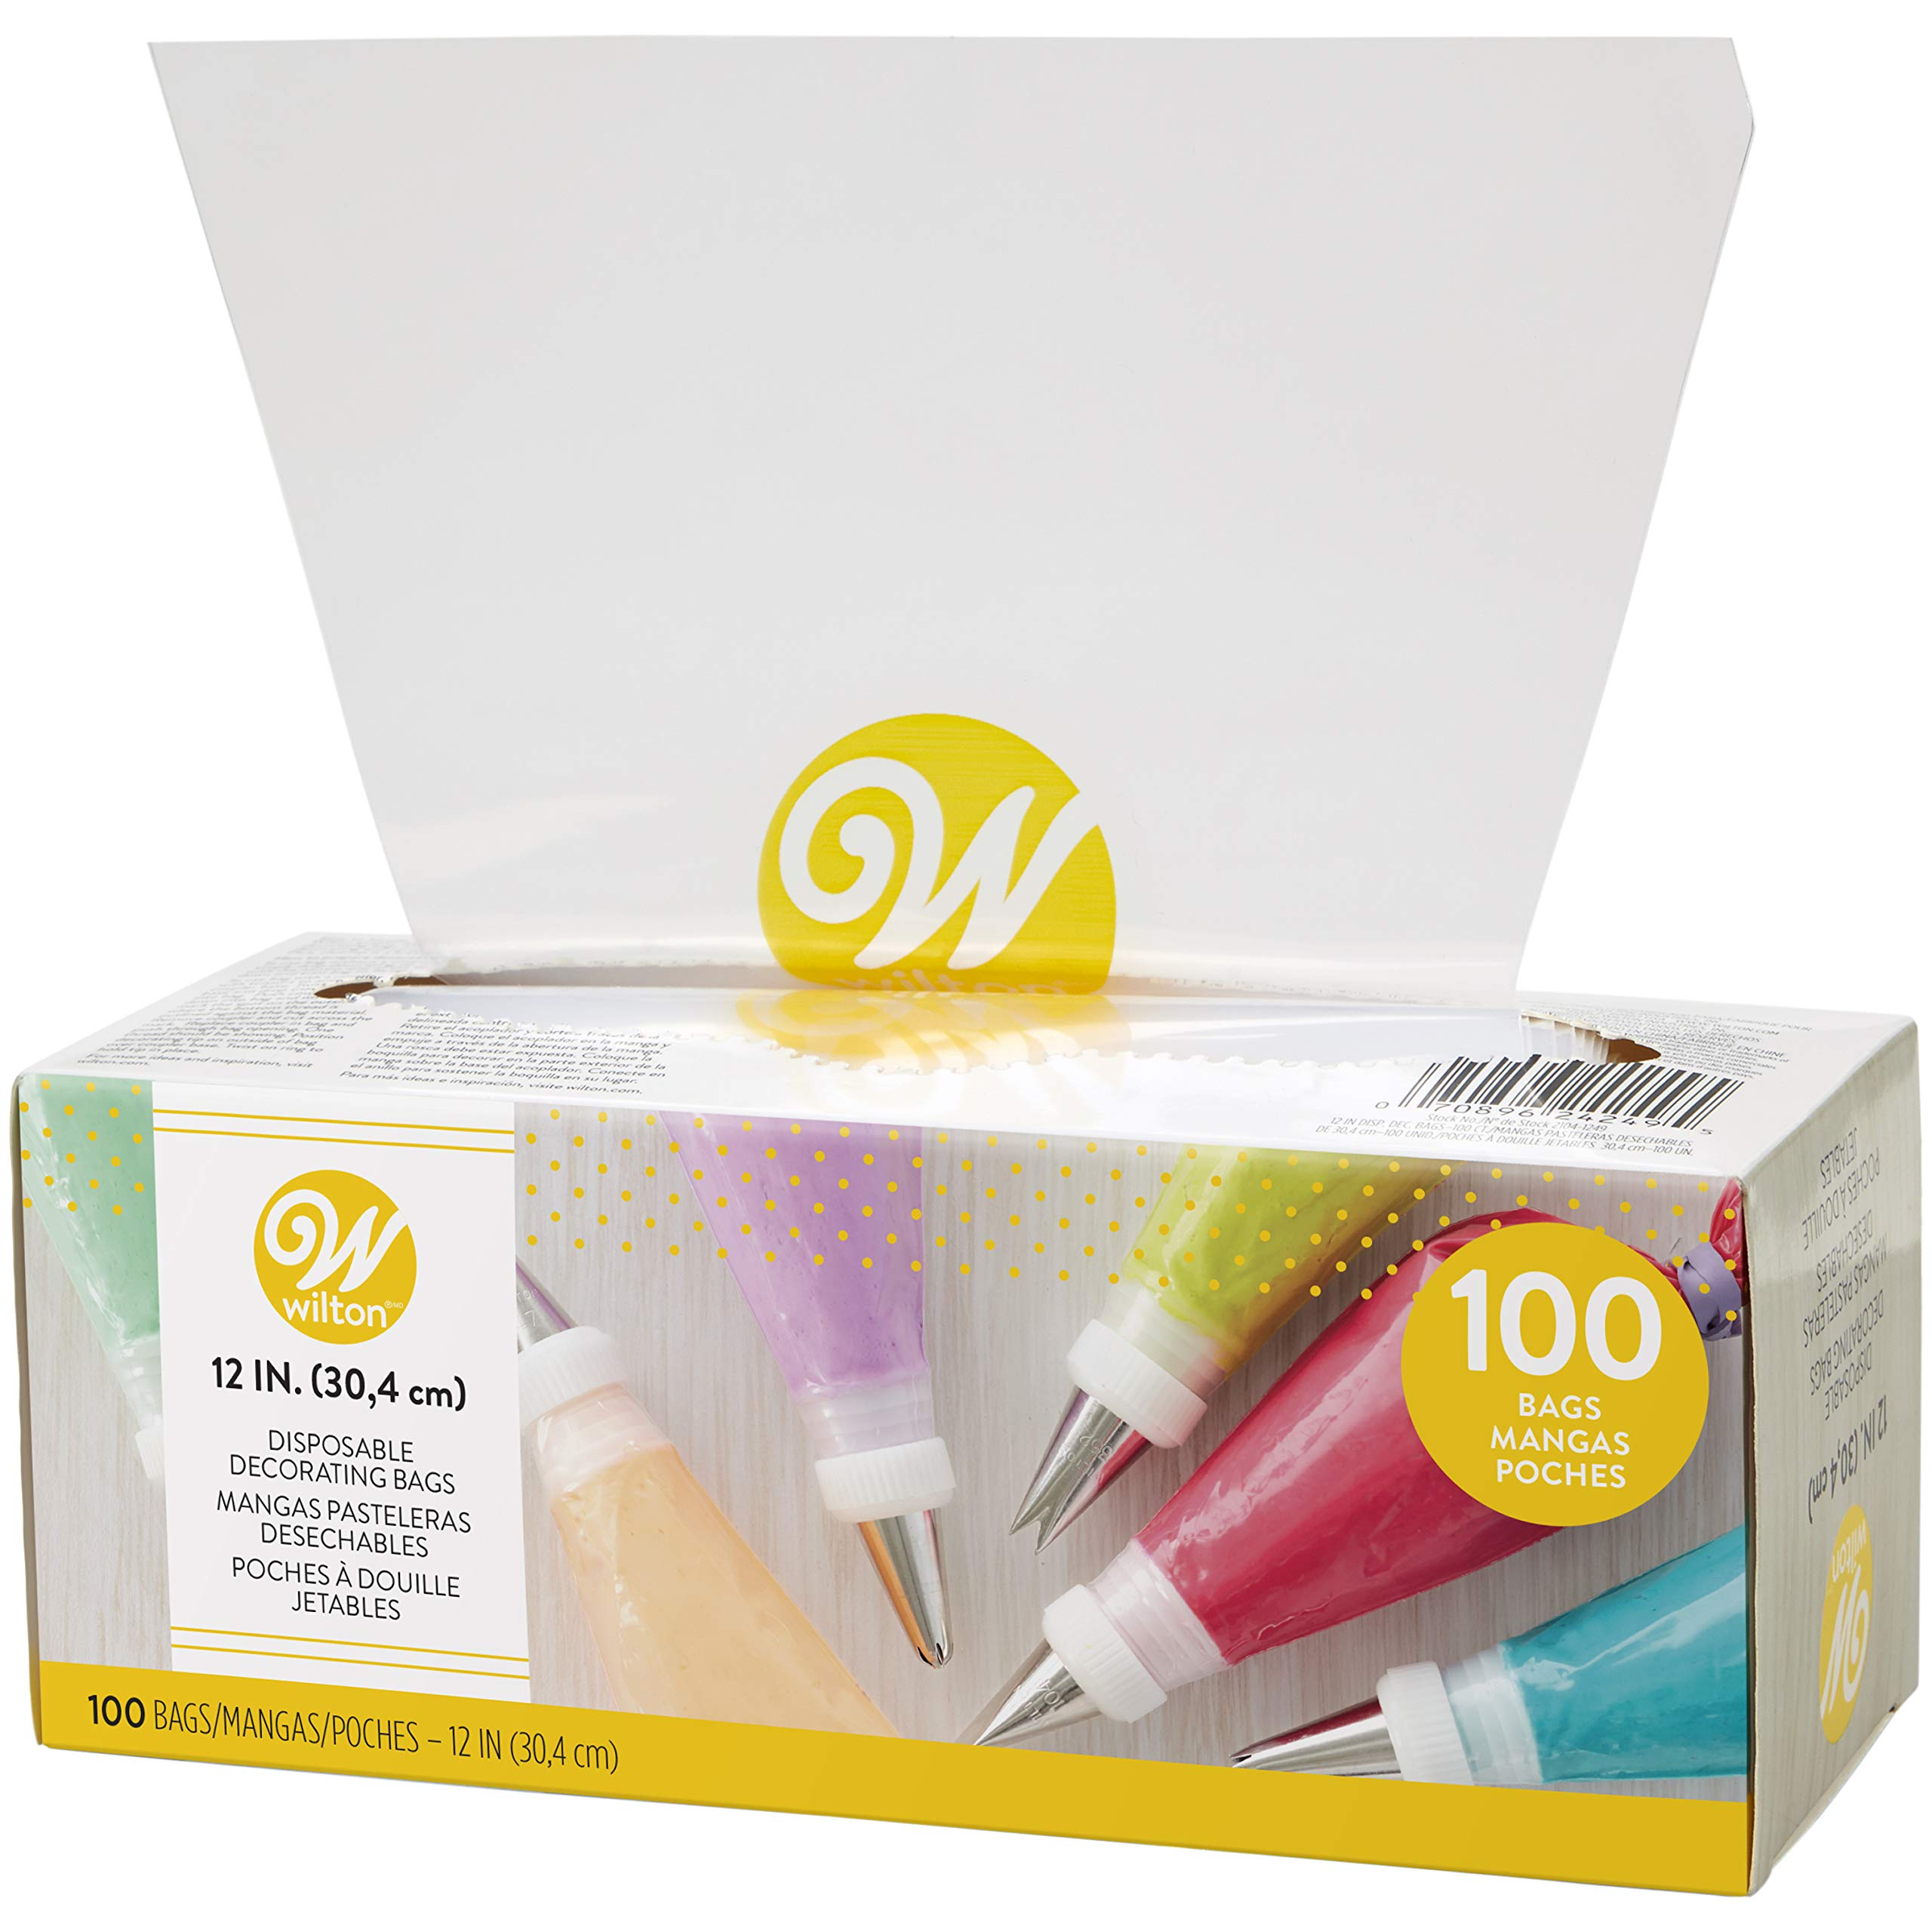 Wilton 12-Inch Disposable Cake Decorating and Pastry Bags, 100-Count by Wilton